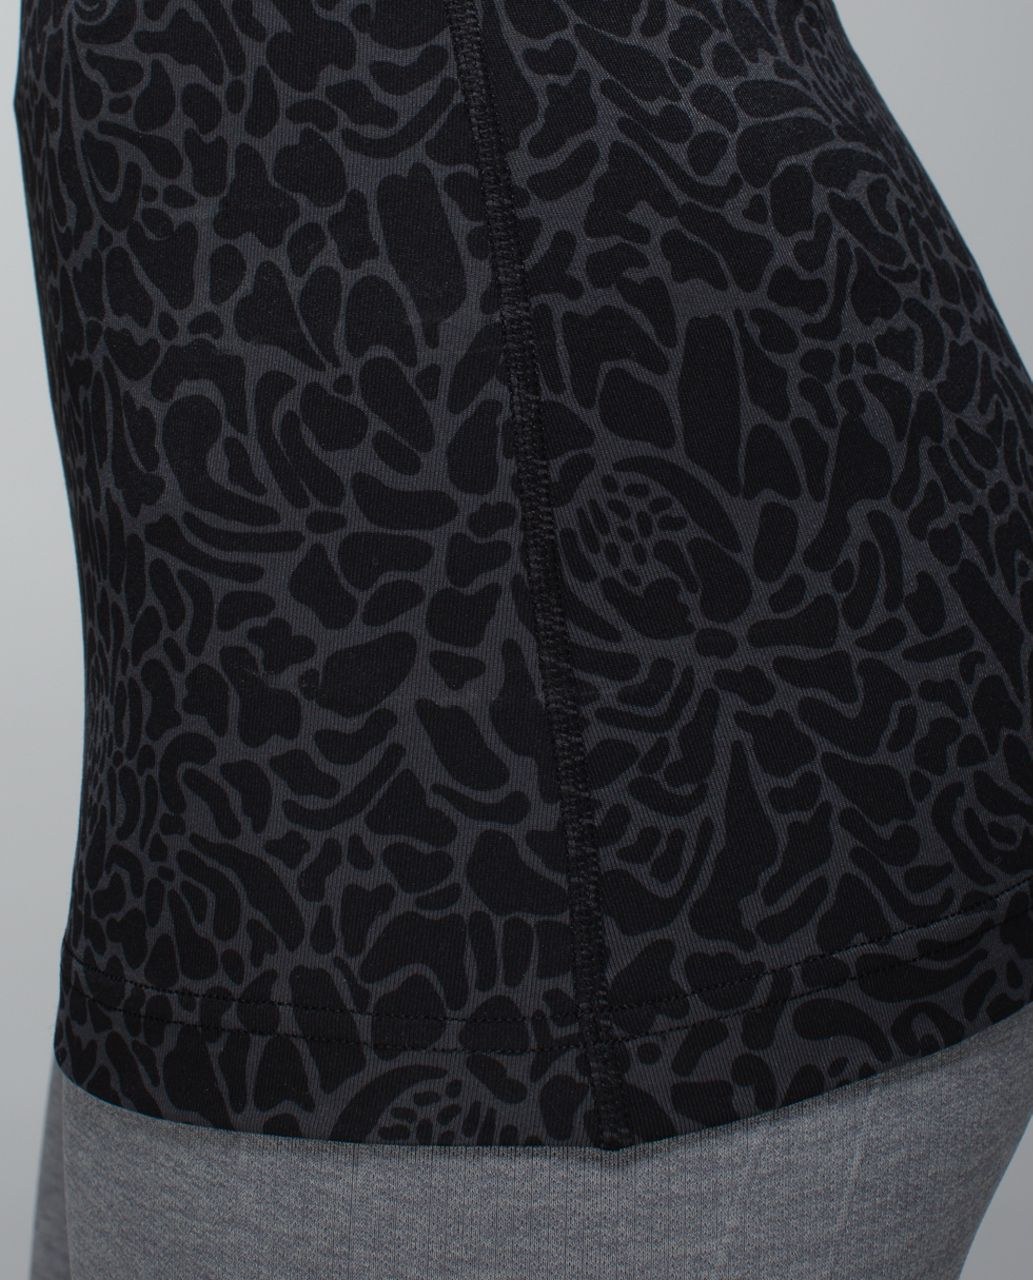 Lululemon Cool Racerback - Petal Camo Printed Black Deep Coal